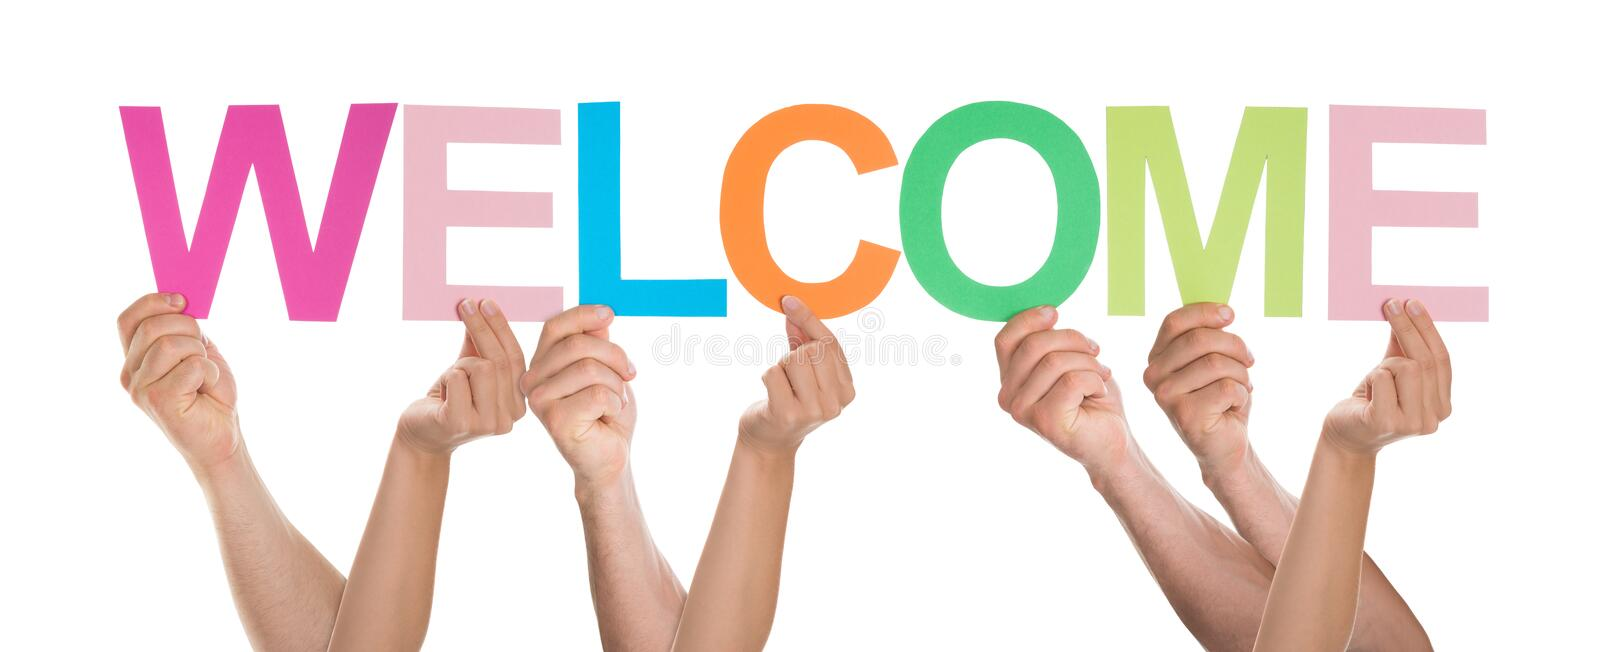 Group Of People Holding The Word Welcome Stock Photo - Image of